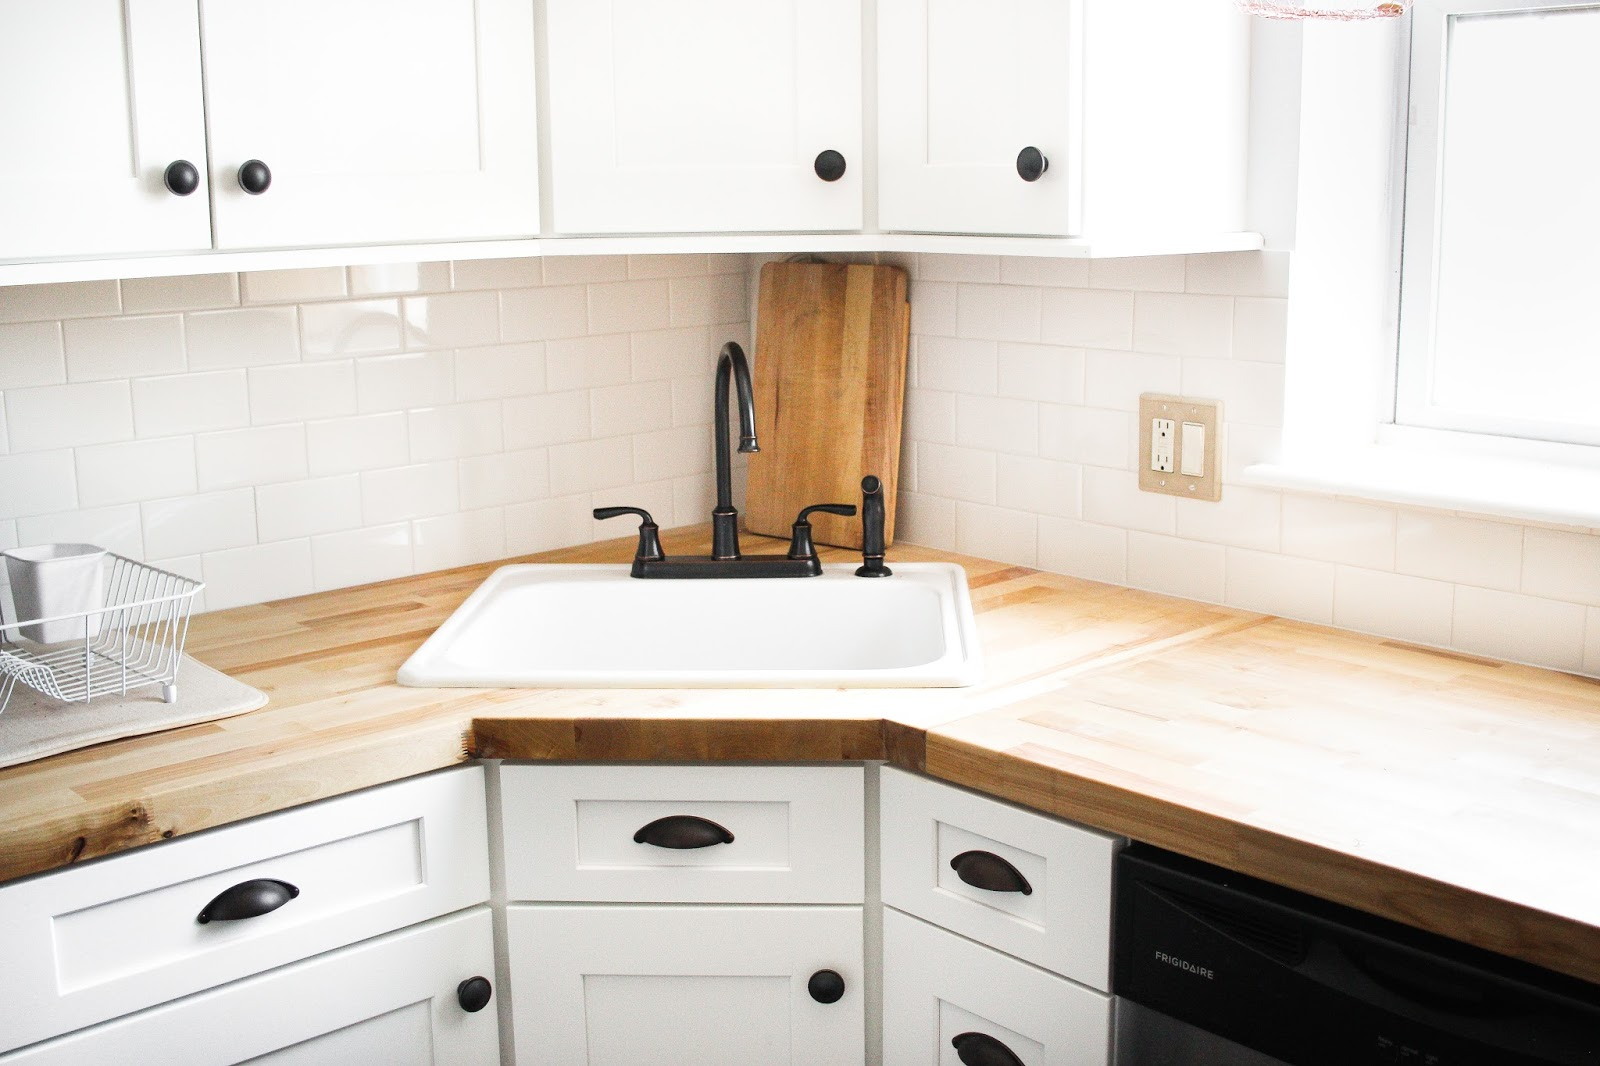 butcher block countertop, farmhouse sink, farmhouse kitchen reno